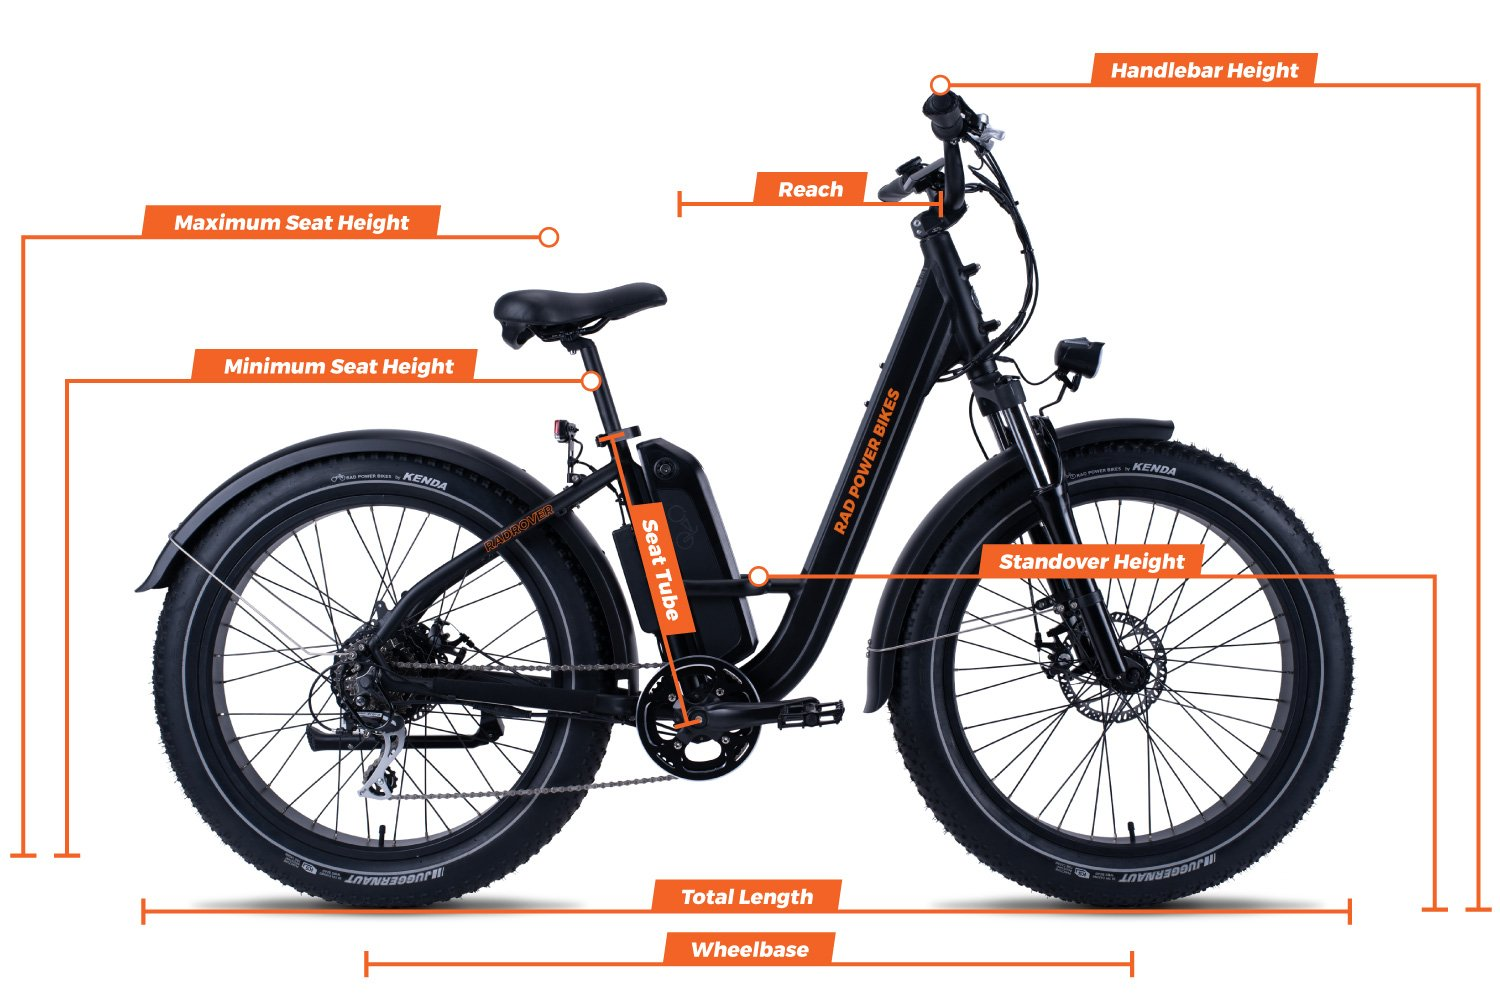 Geometry chart for the RadRover Step-Thru Electric Fat Bike Version 1